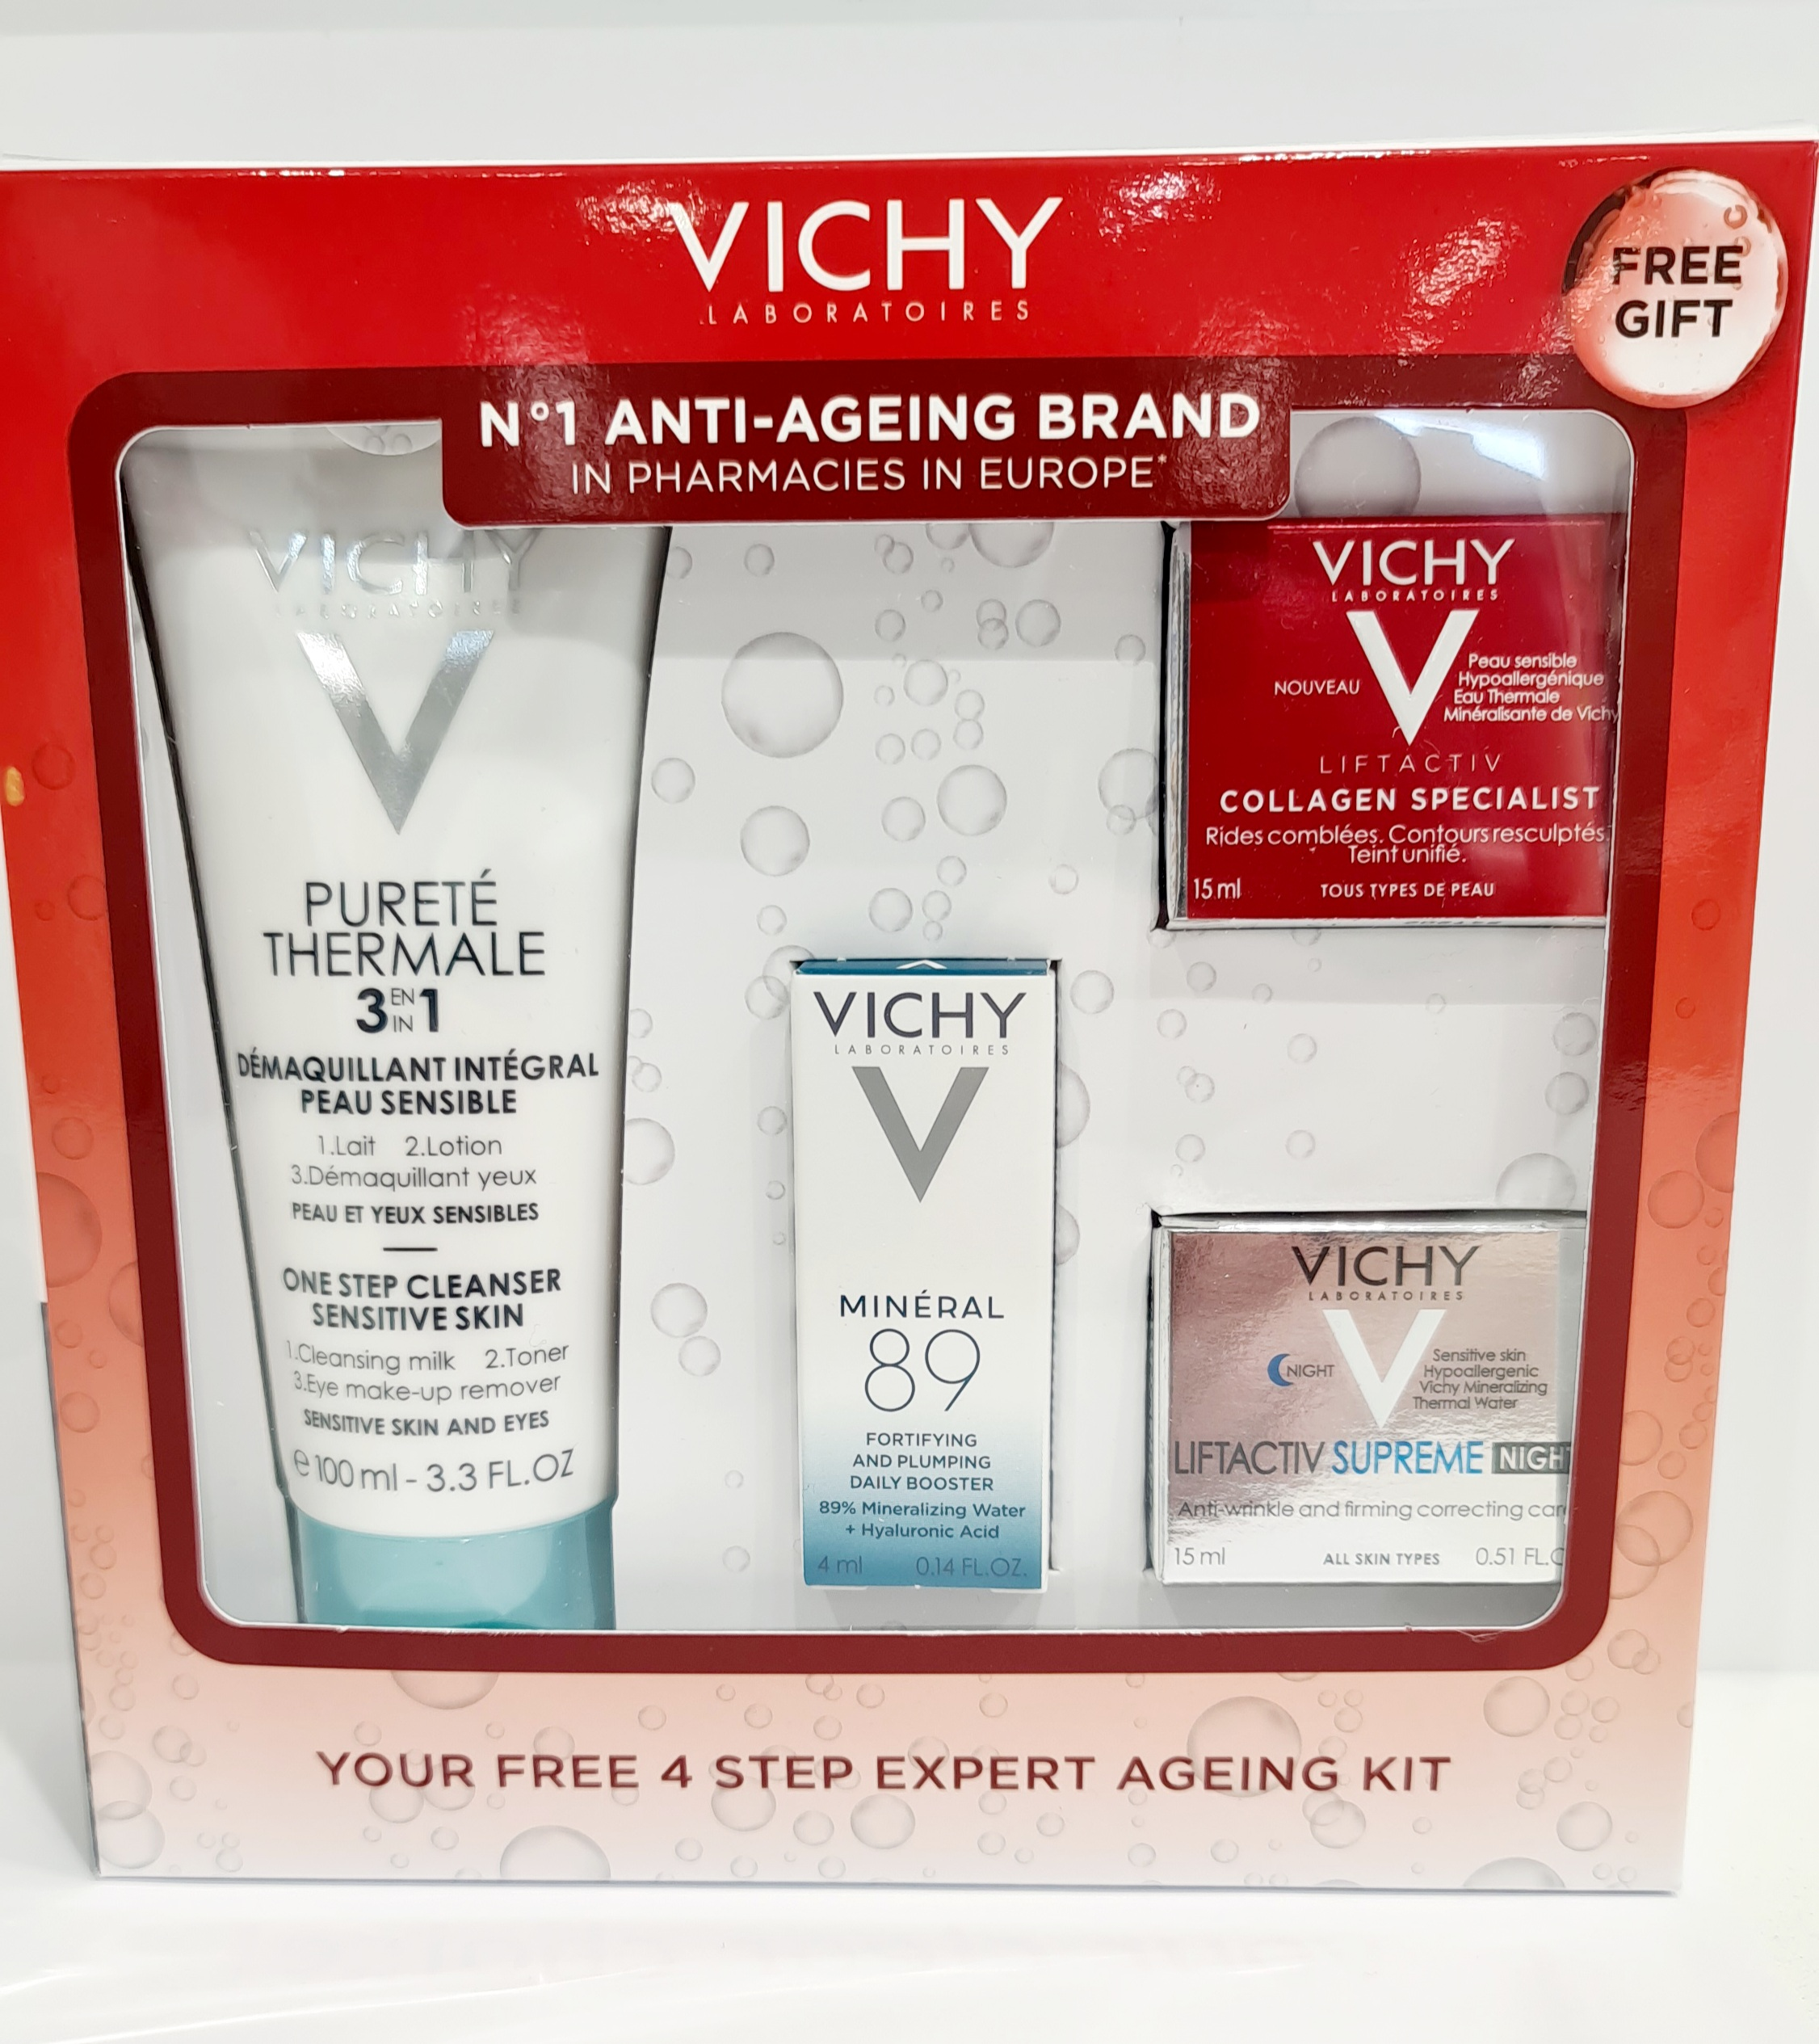 Free Vichy Gift with Purchase